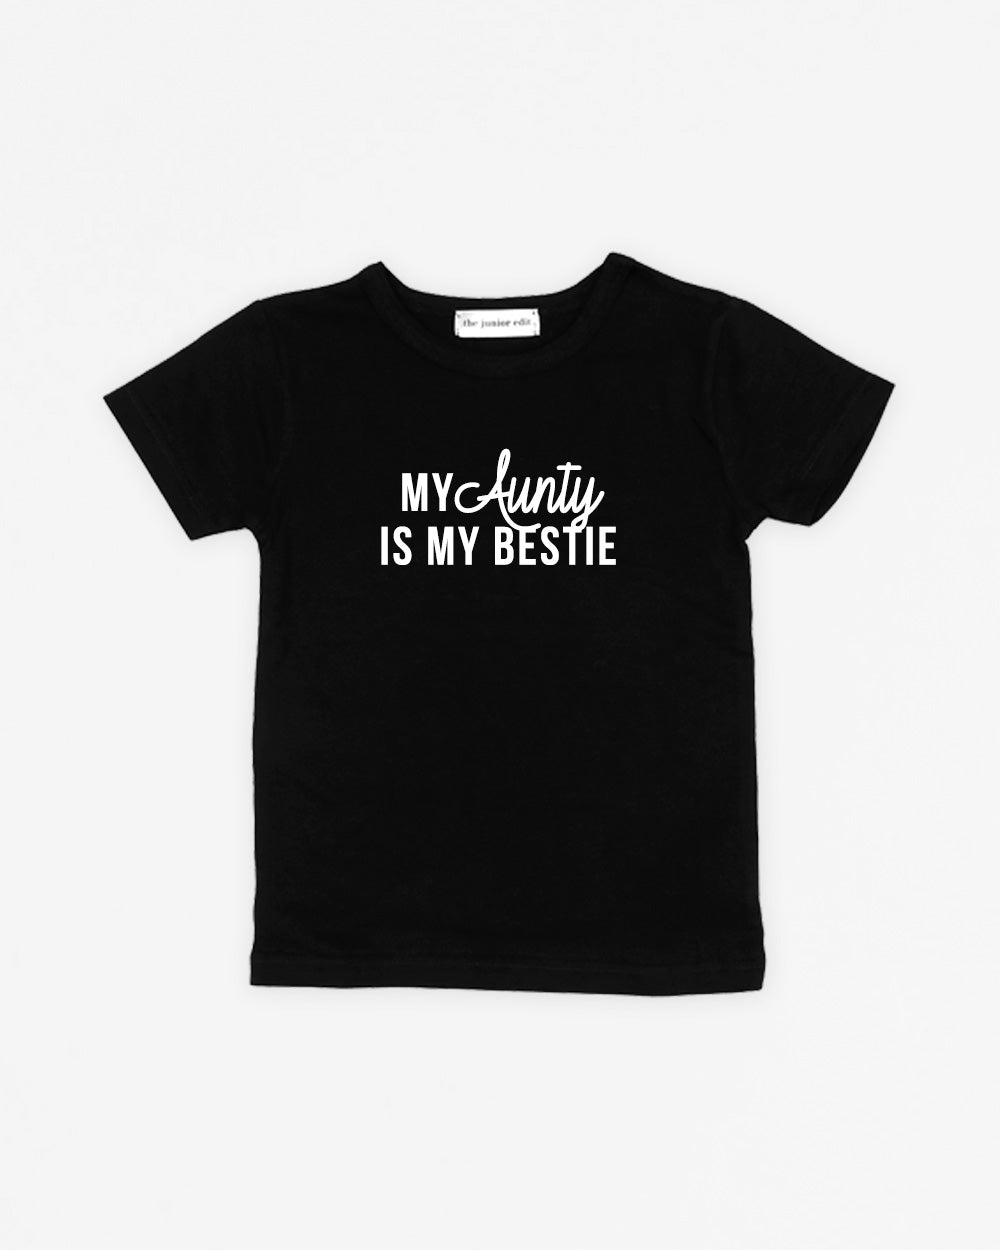 Who's Your Bestie | Tee